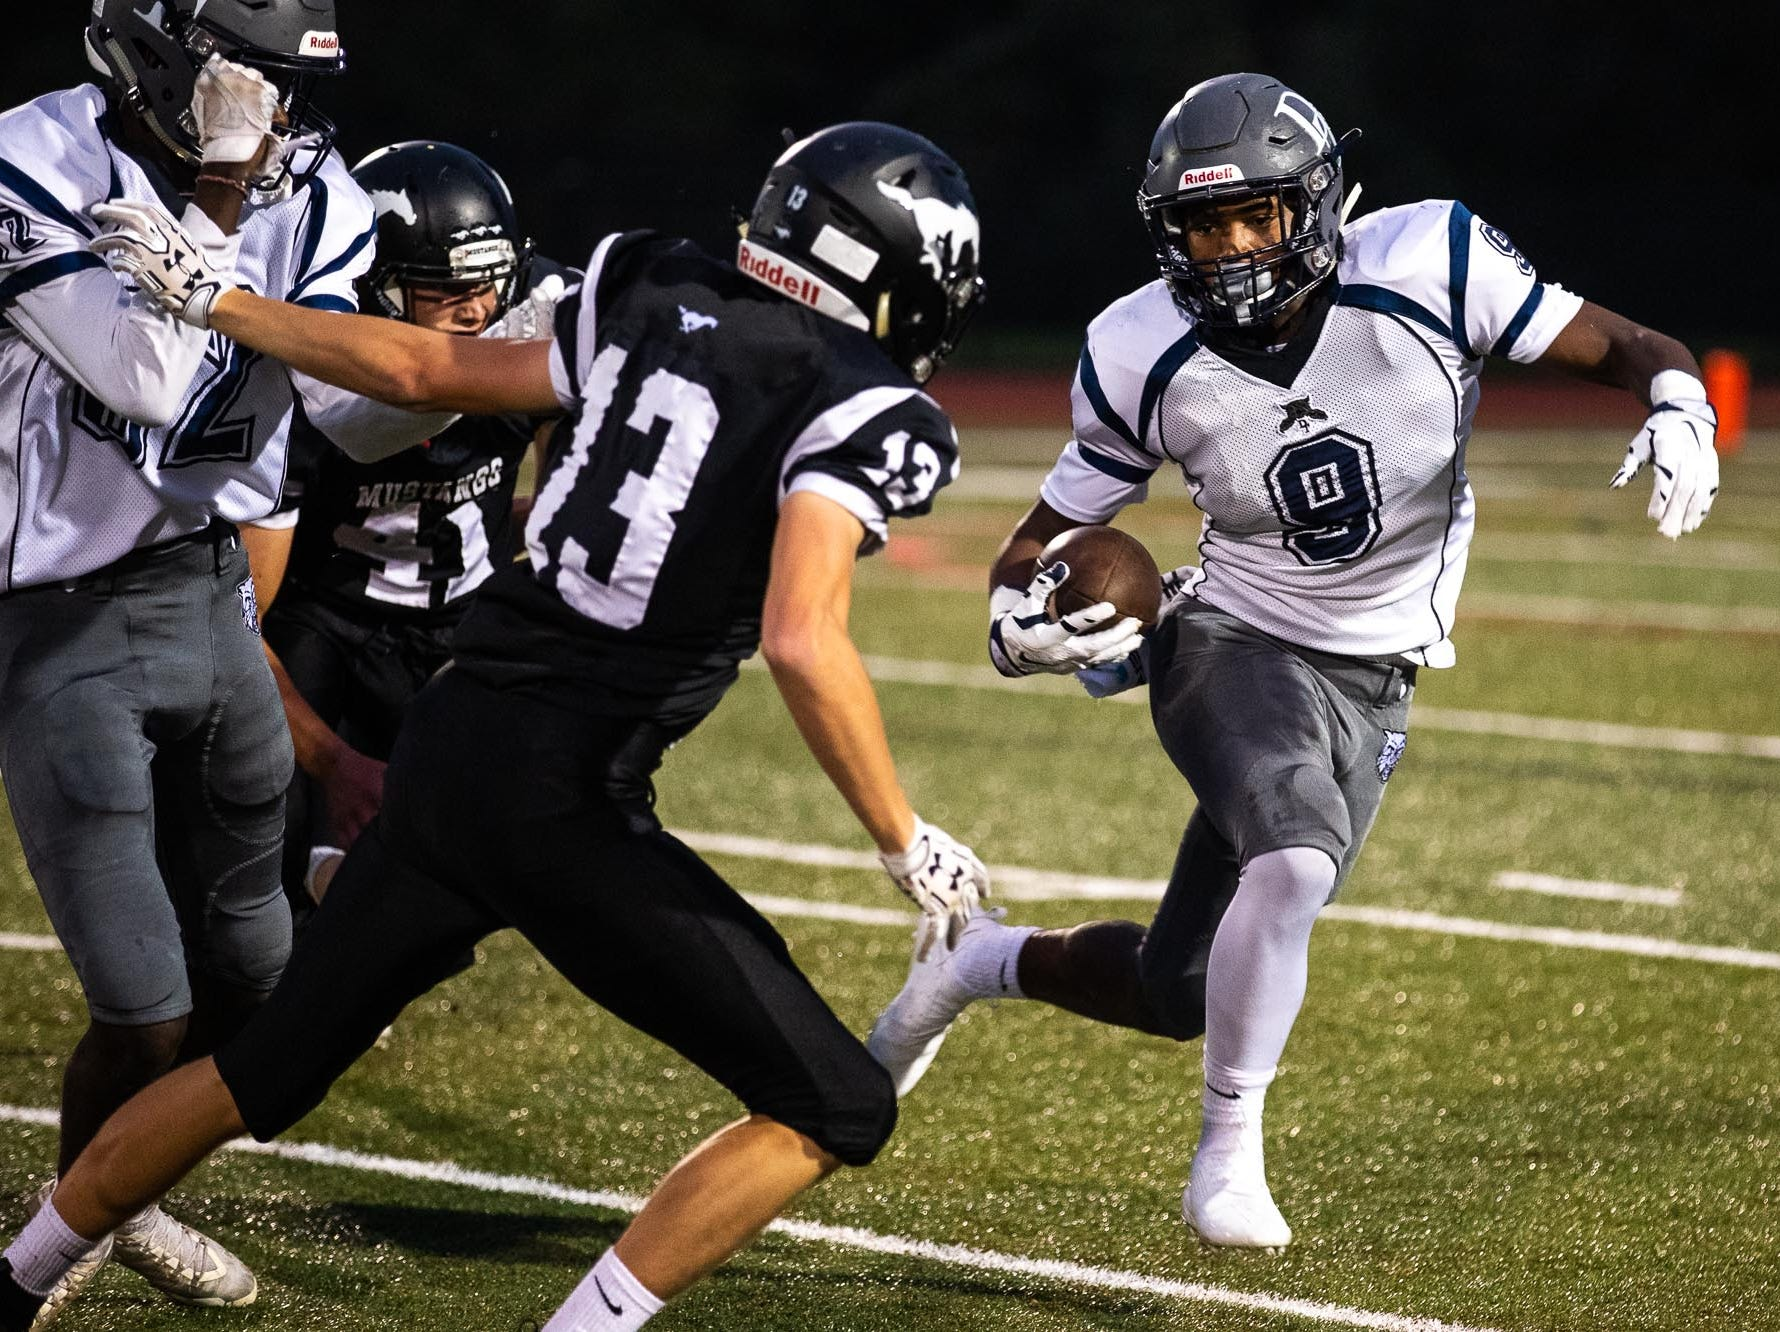 Dallastown's Nyzzair Smith (9) runs the ball during a football game between South Western and Dallastown, Friday, Sept. 14, 2018, at South Western High School in Penn Township. Dallastown won, 35-7.